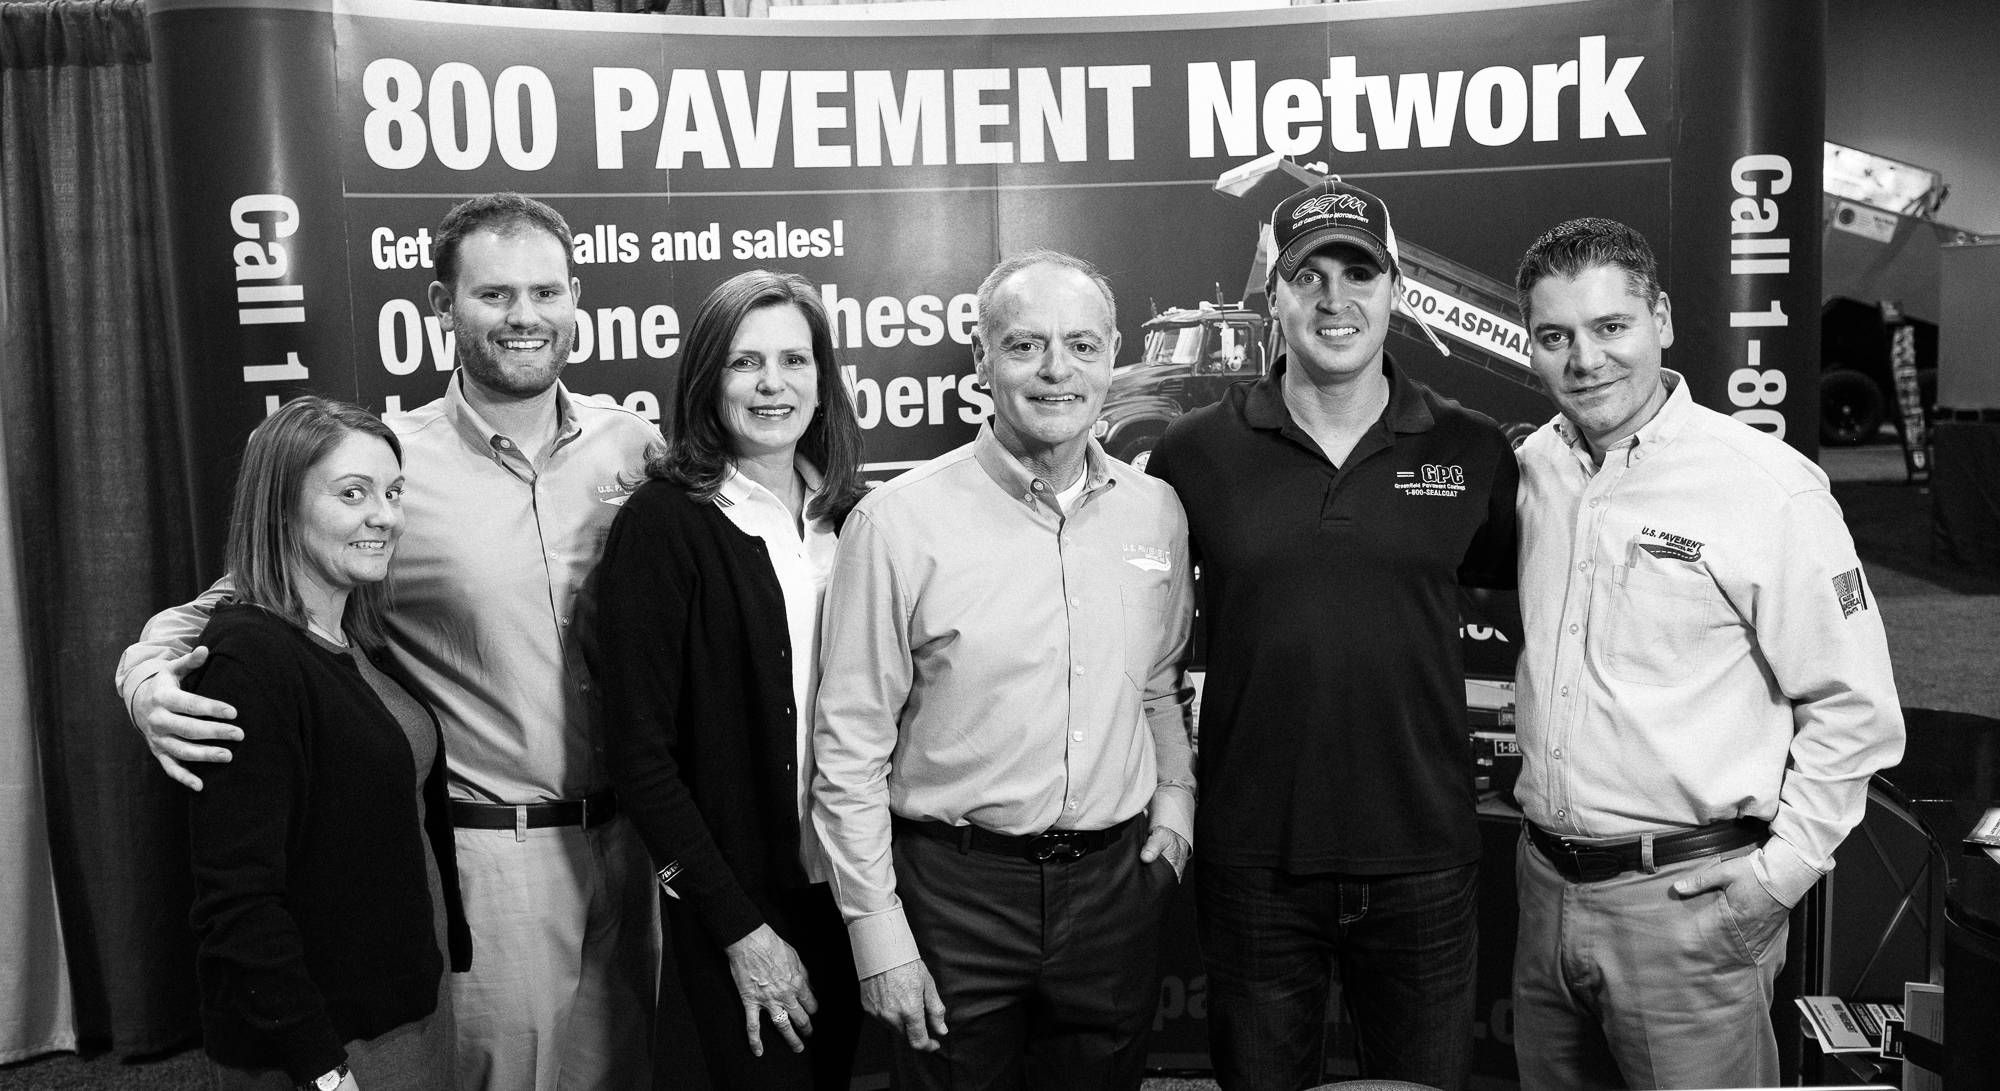 Clay Greenfield with U.S. Pavement at the 2017 National Pavement Expo